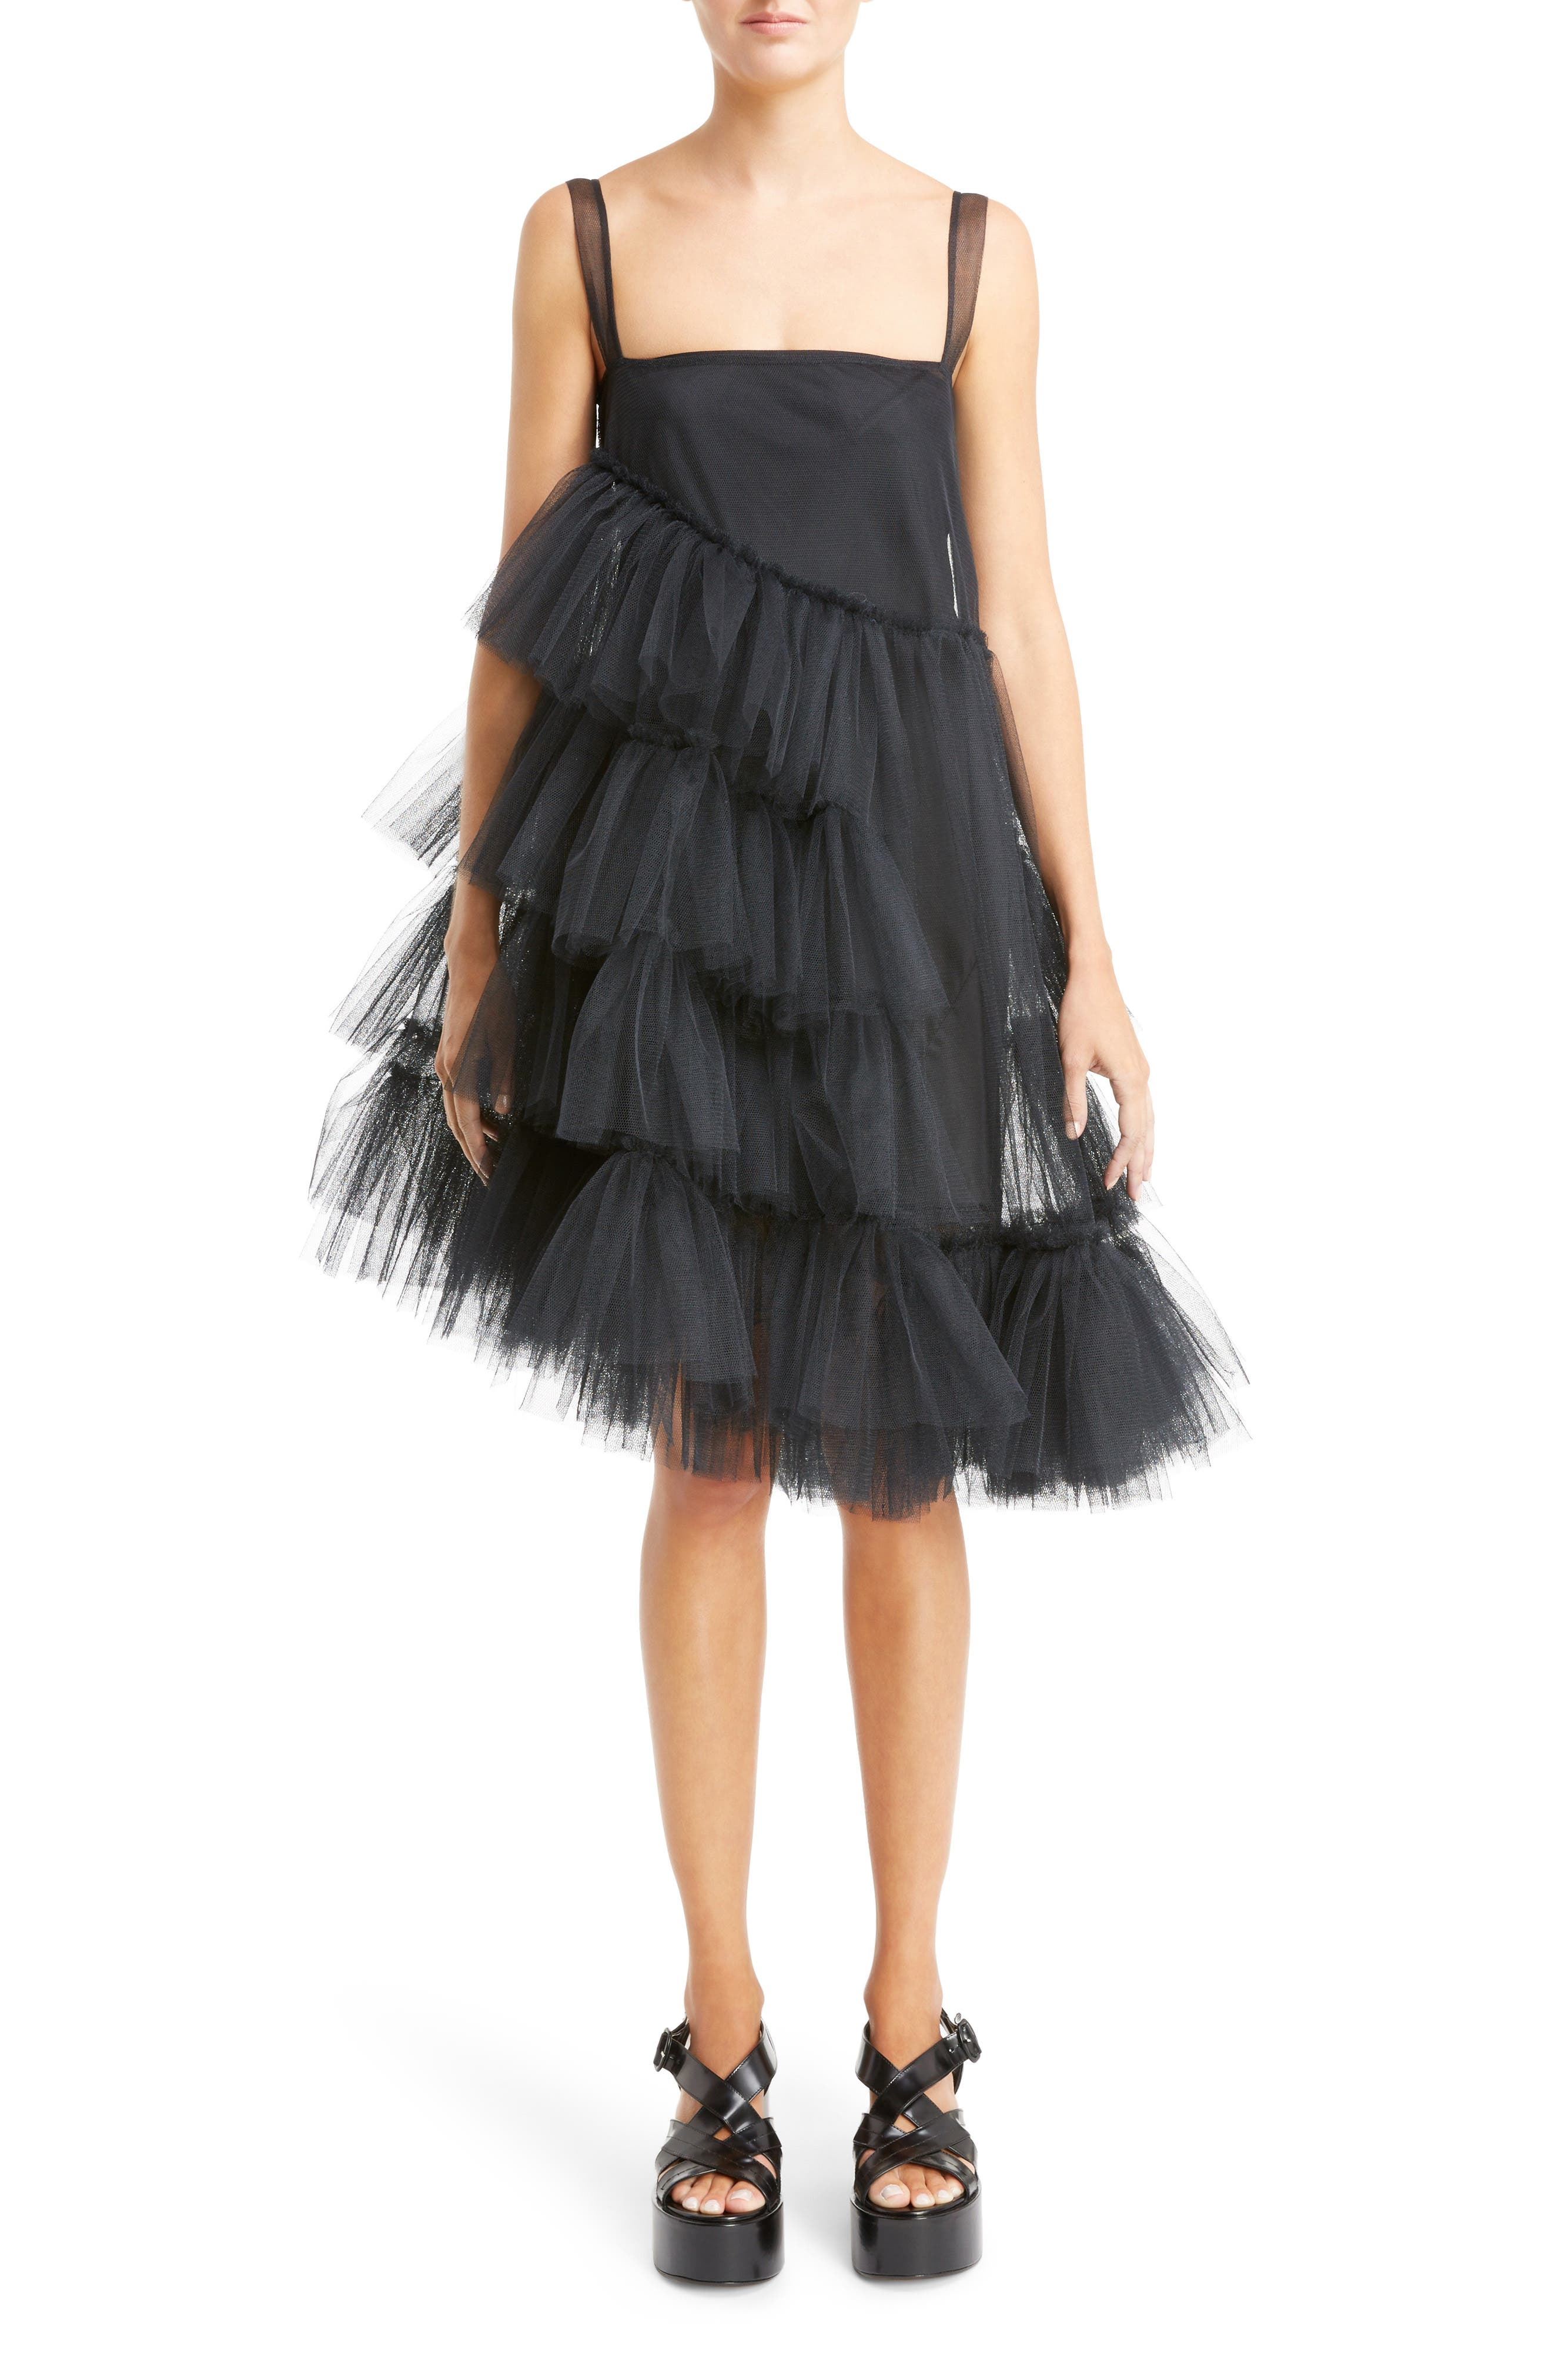 Turbo Tiered Tulle Dress,                         Main,                         color, Black